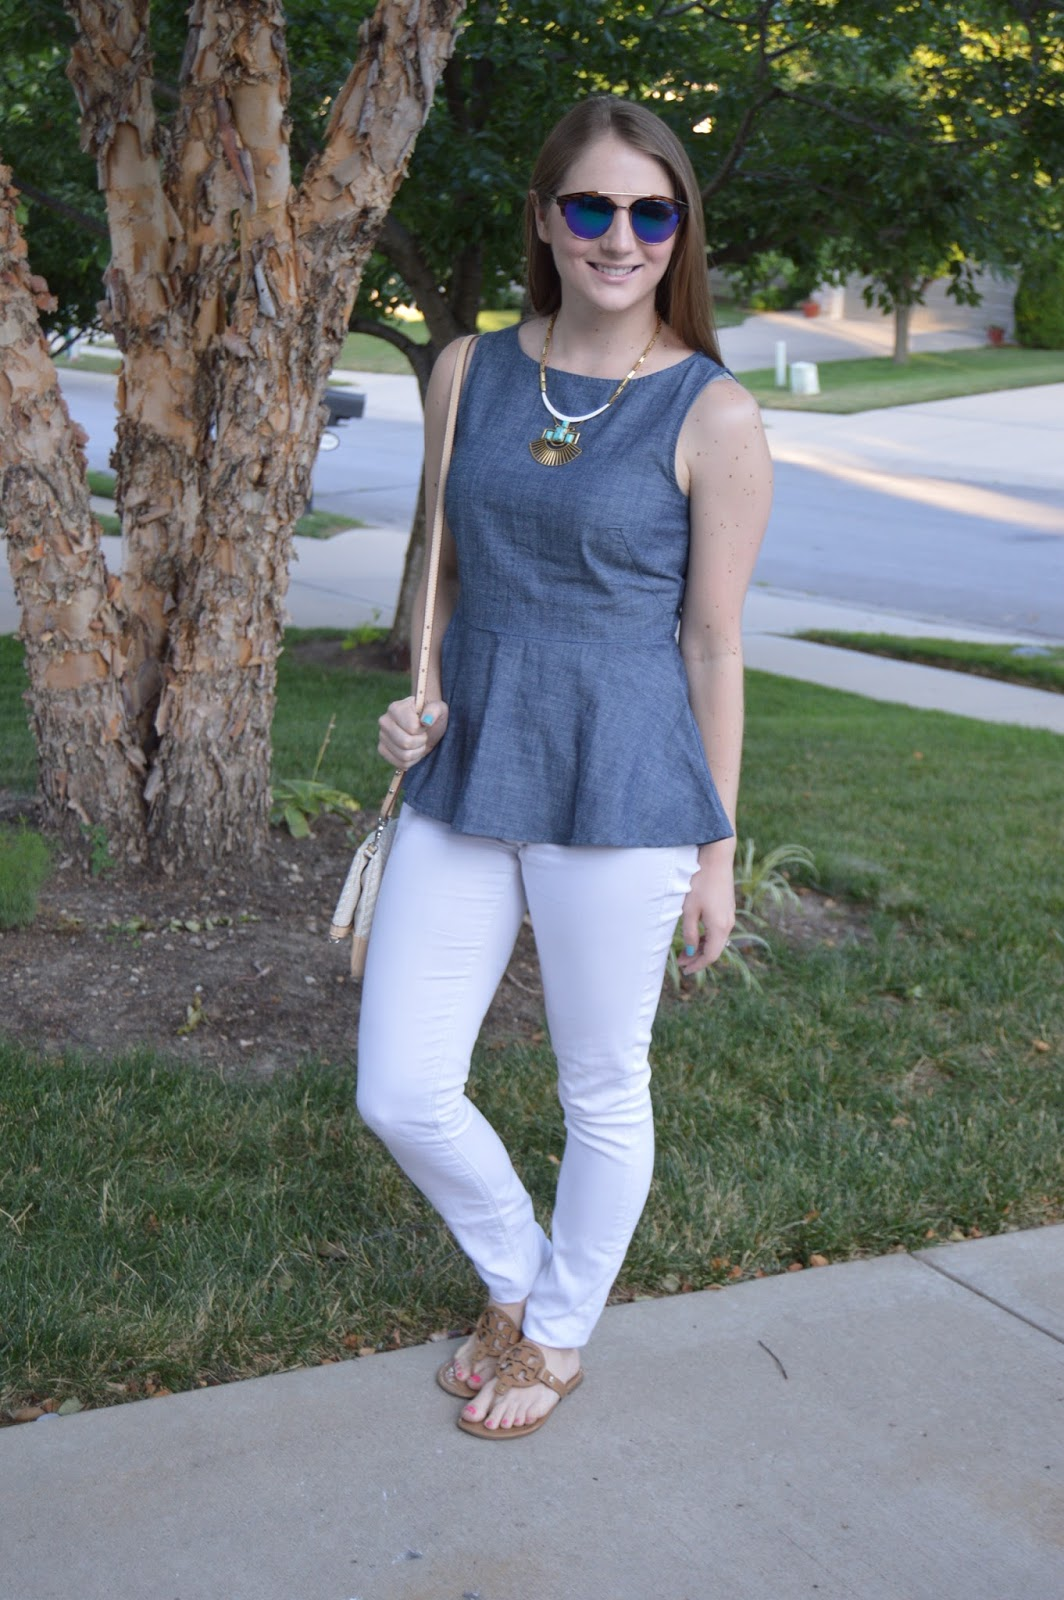 chambray top outfit ideas | white skinny jeans with a chambray top | summer outfit ideas | summer style | summer look book | banana republic your life styled | kansas city blogger |